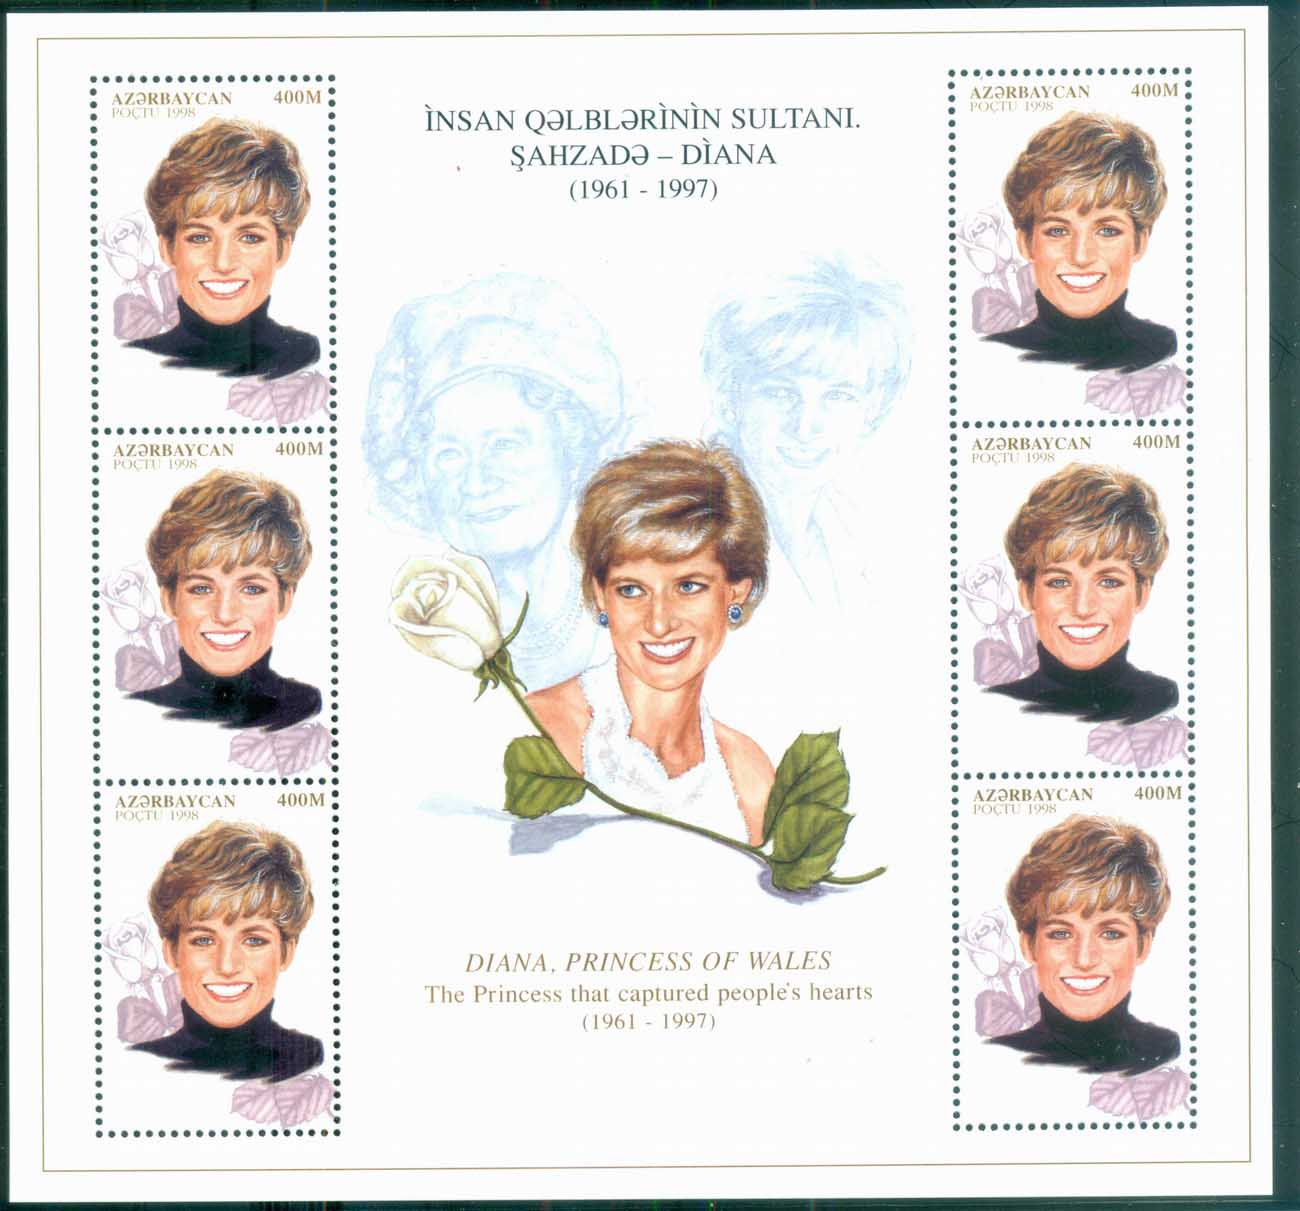 Azerbaijan 1998 Princess Diana in Memoriam, Memories of a Princess MS MUH